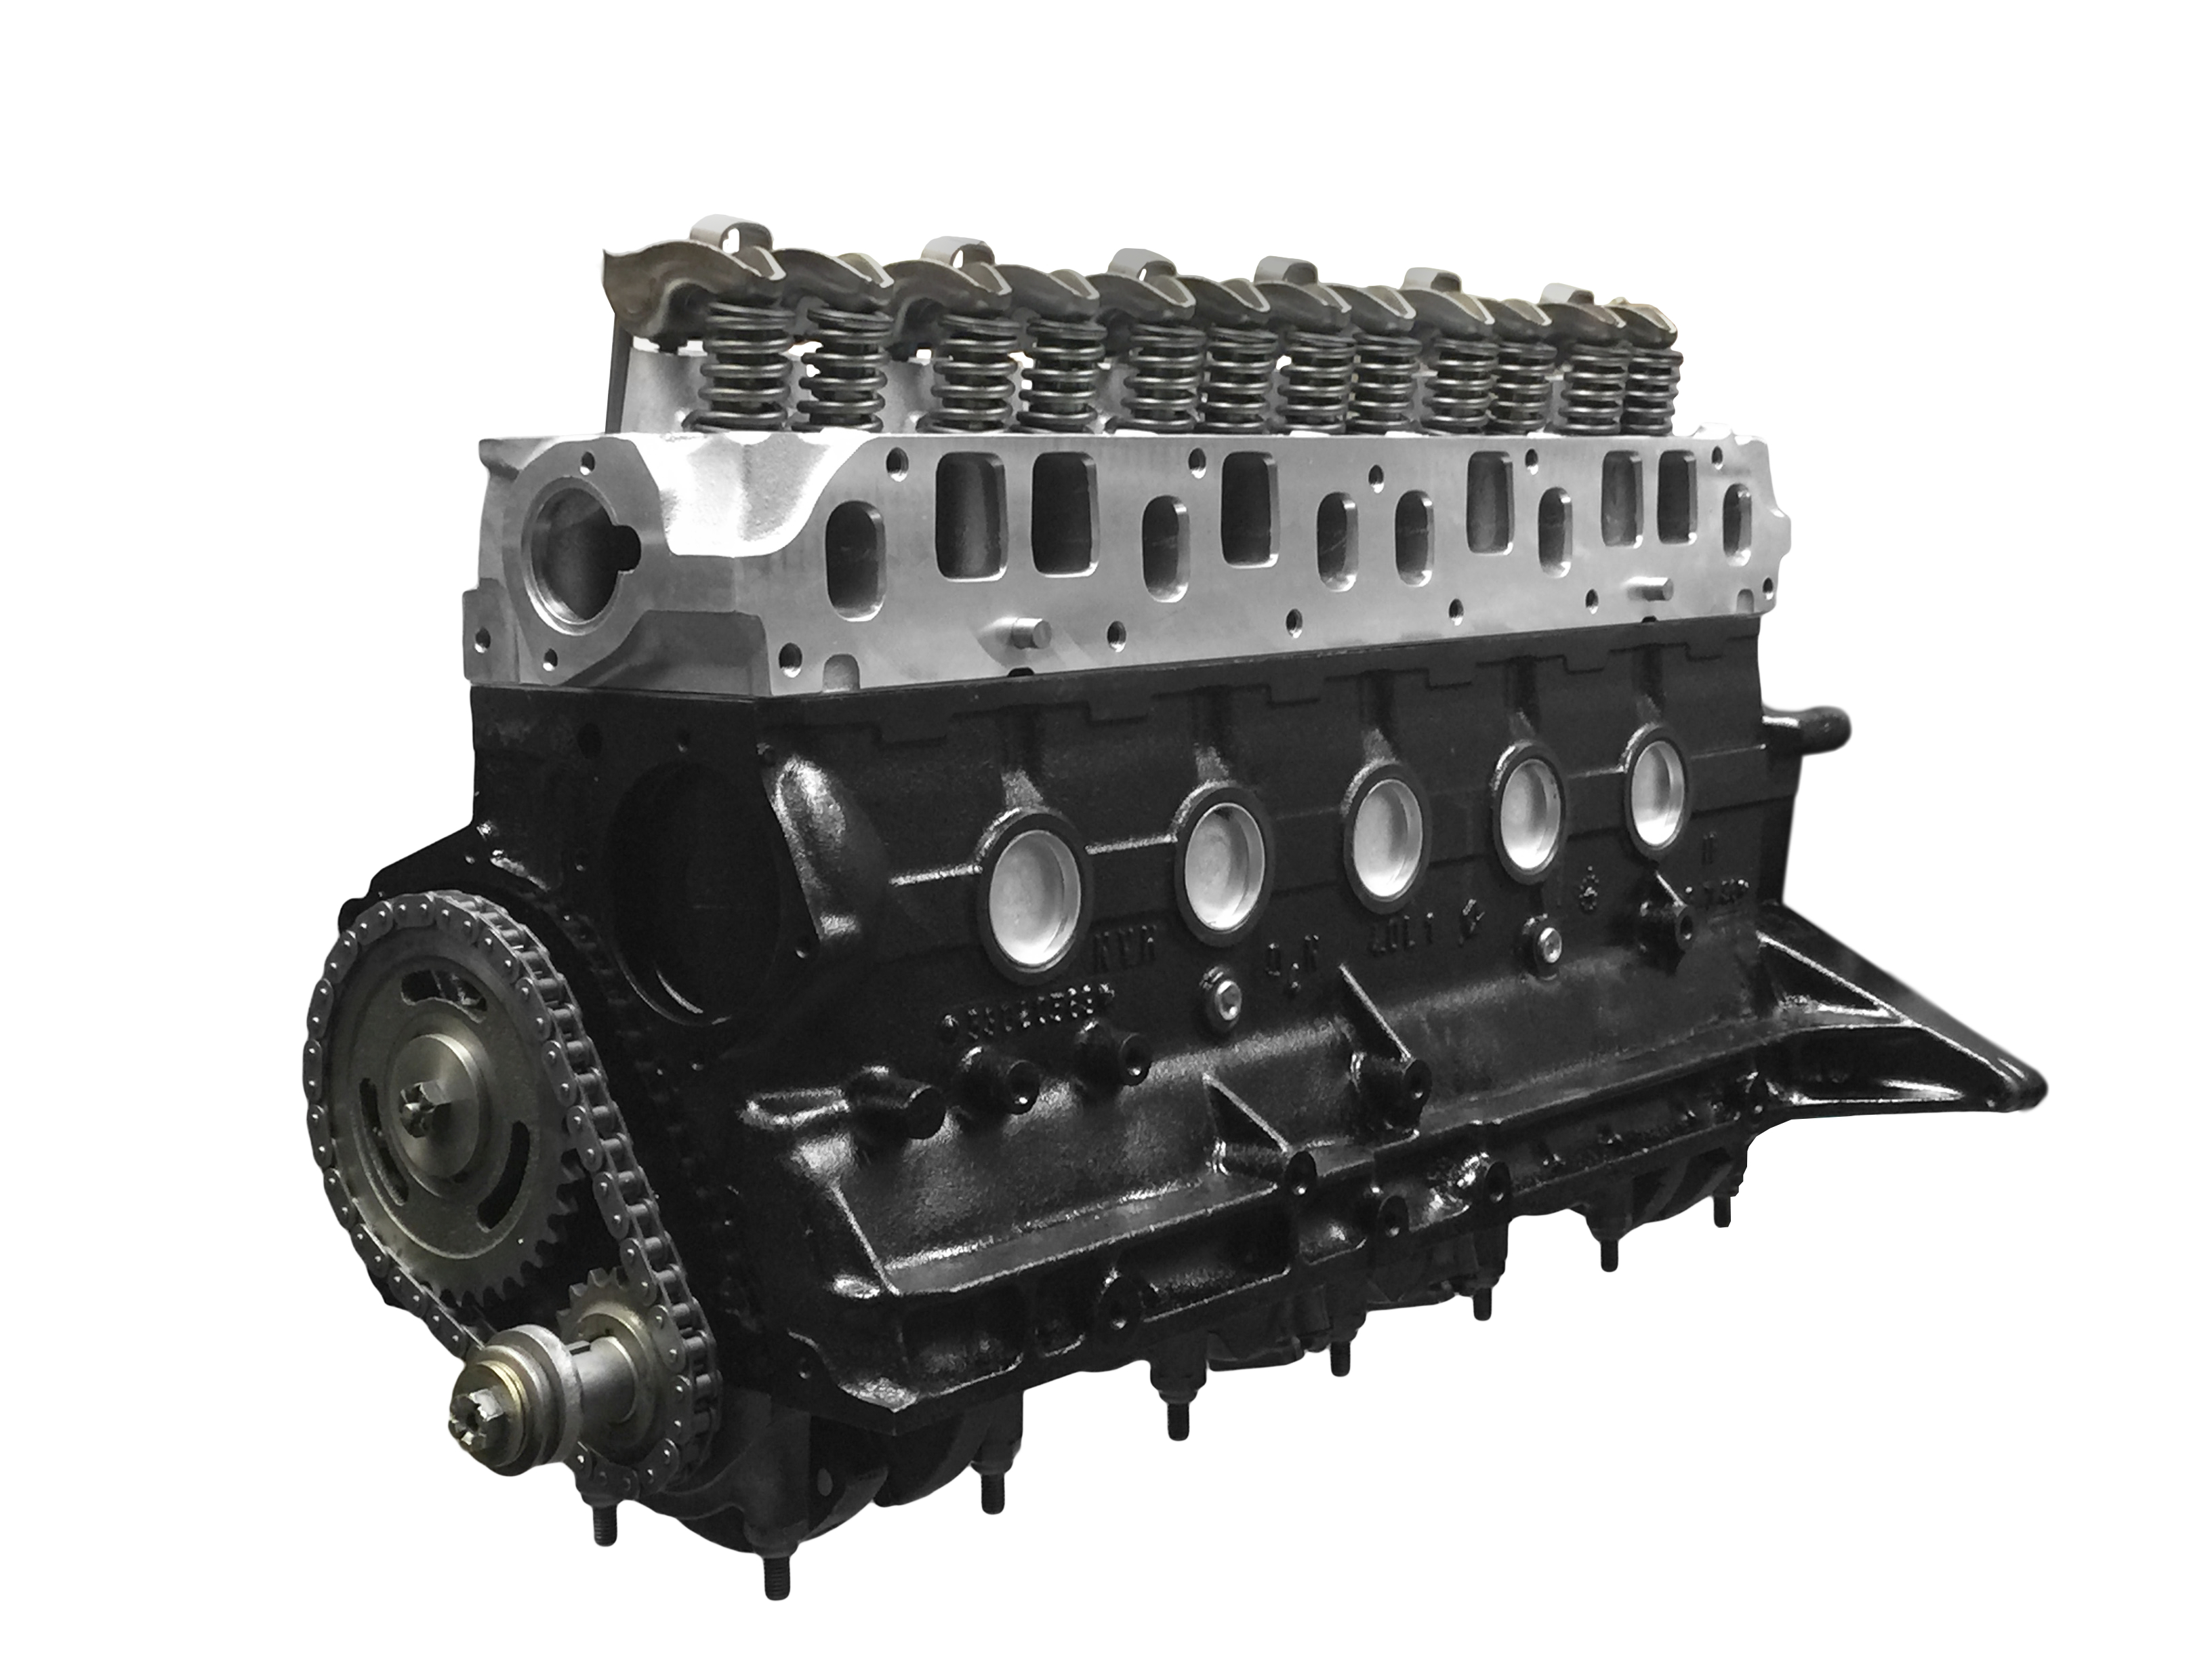 Lovely TITAN HYPER 4.7 JEEP STROKER ENGINE W/ HIGH FLOW EDELBROCK ALUMINUM HEAD    Titan Engines